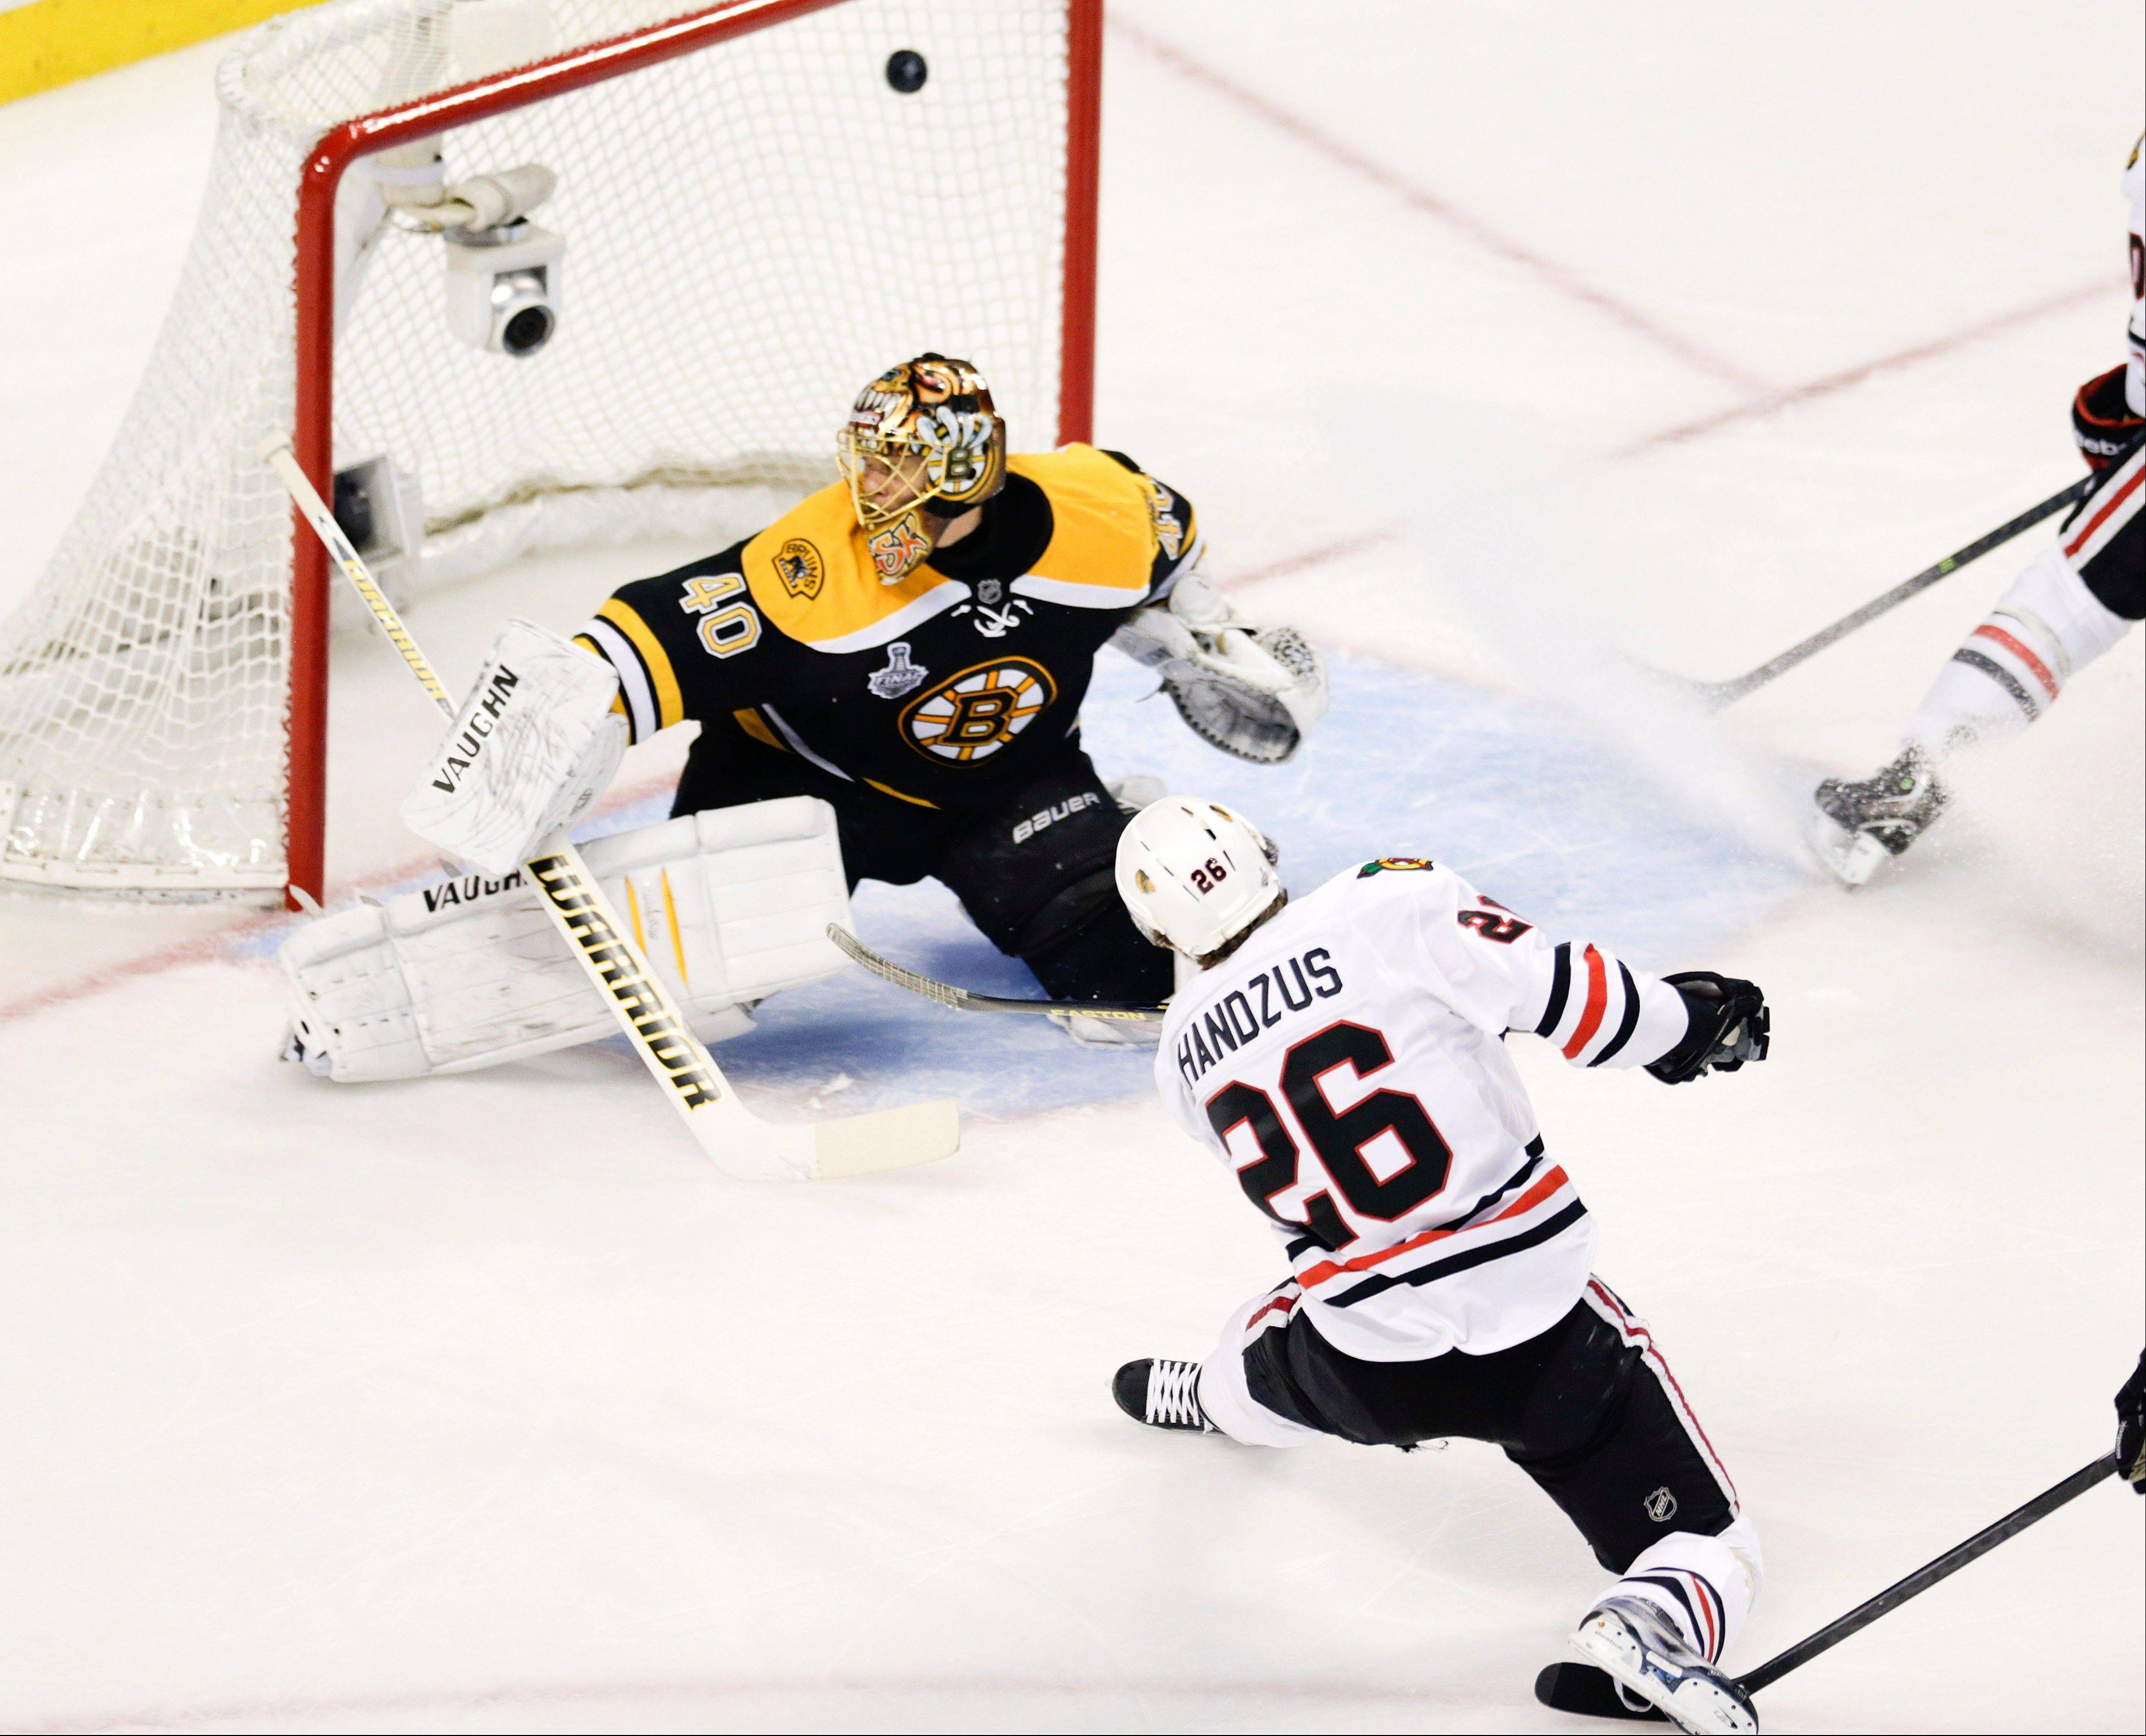 Chicago Blackhawks center Michal Handzus (26), of Slovakia, scores past Boston Bruins goalie Tuukka Rask (40), of Finland, during the first period in Game 4 of the NHL hockey Stanley Cup Finals.